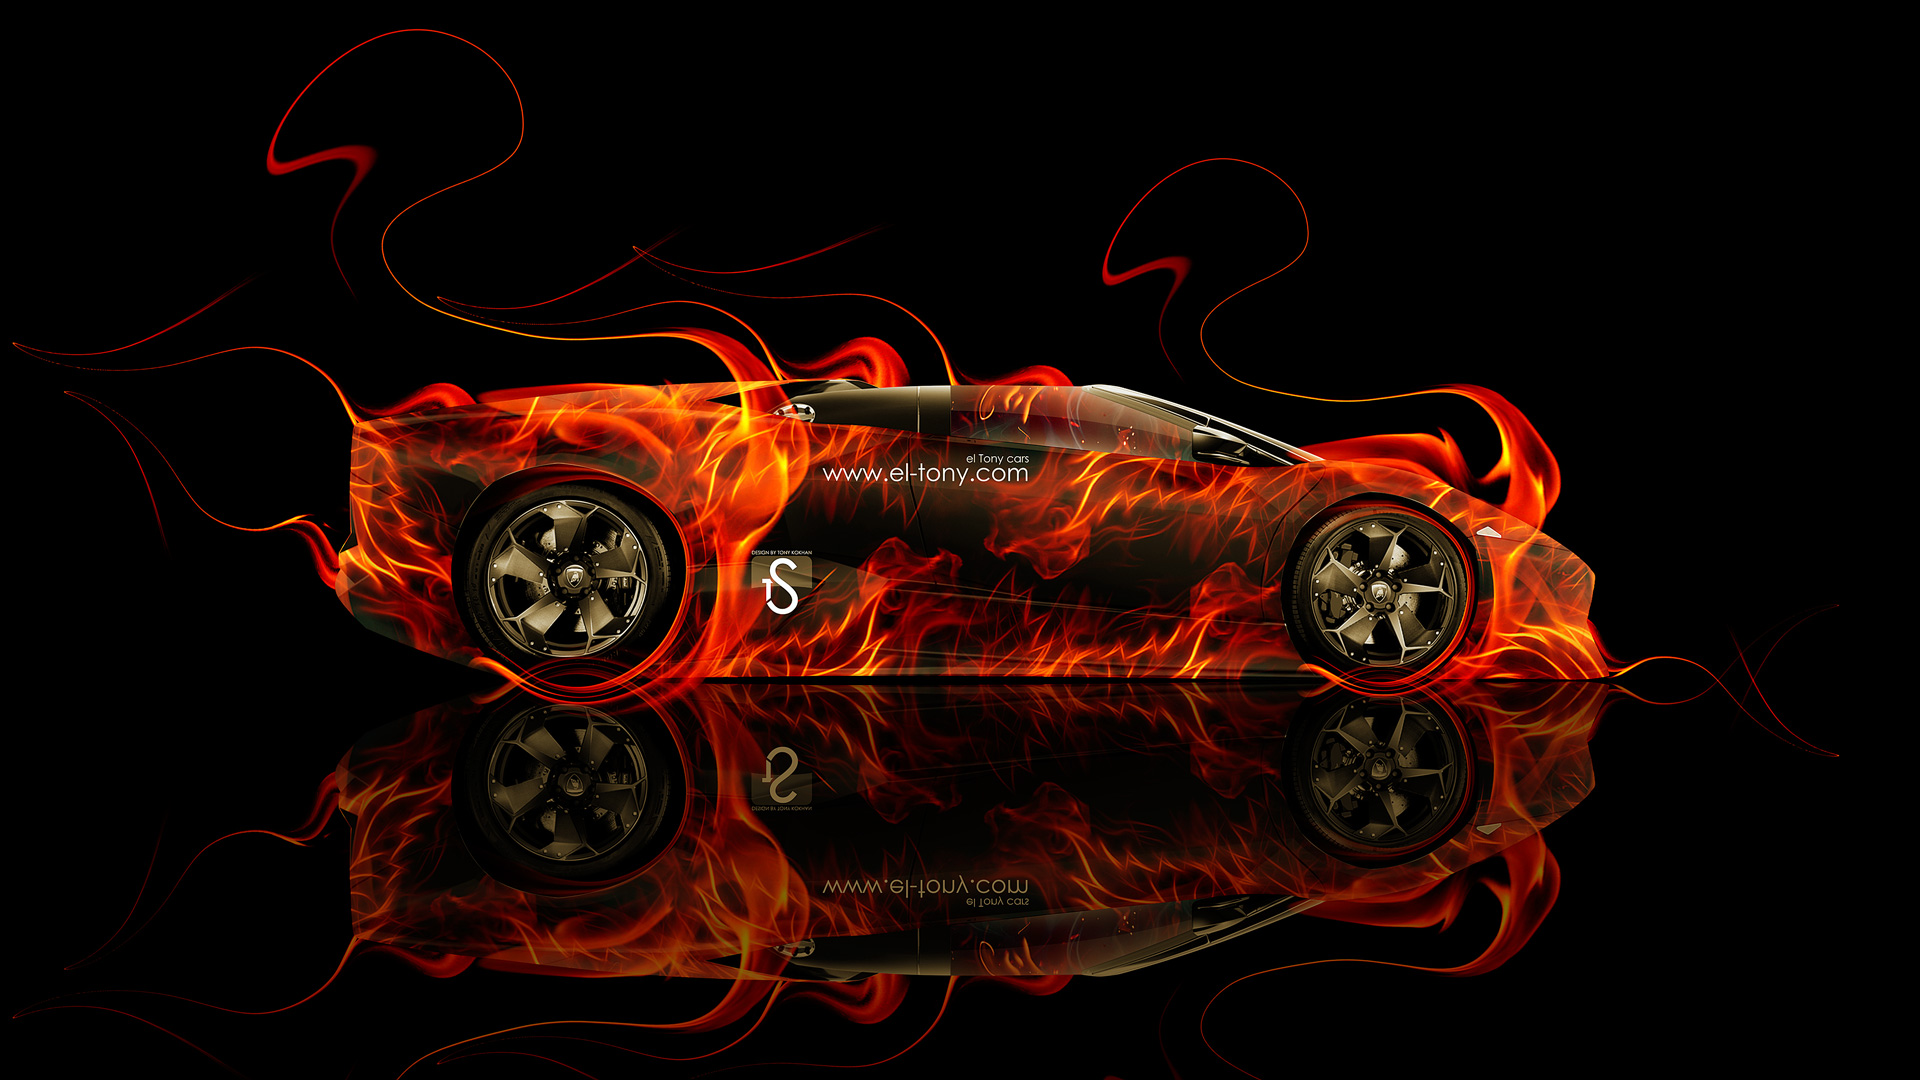 Lamborghini reventon fire city car 2013 hd wallpapers design by tony - Roadster Tony Stark Car Collections Iron Man